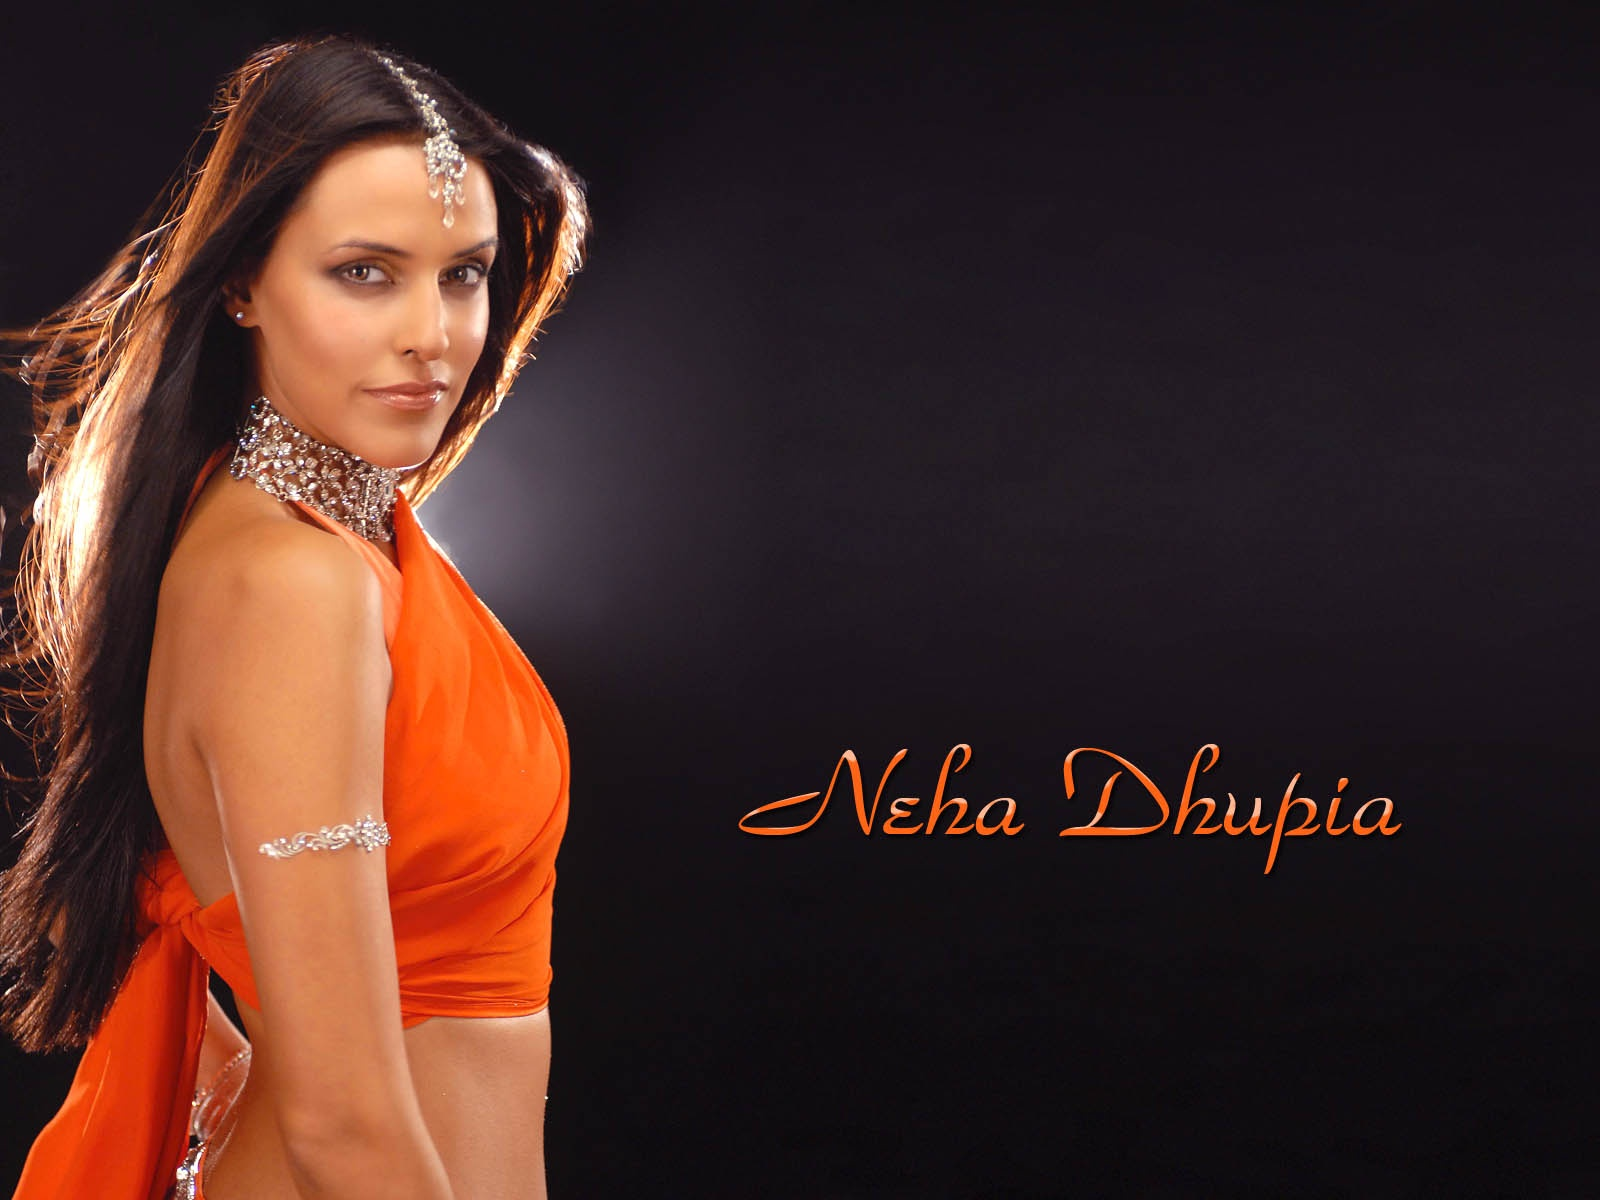 neha dhupia wallpapers hot - photo #33